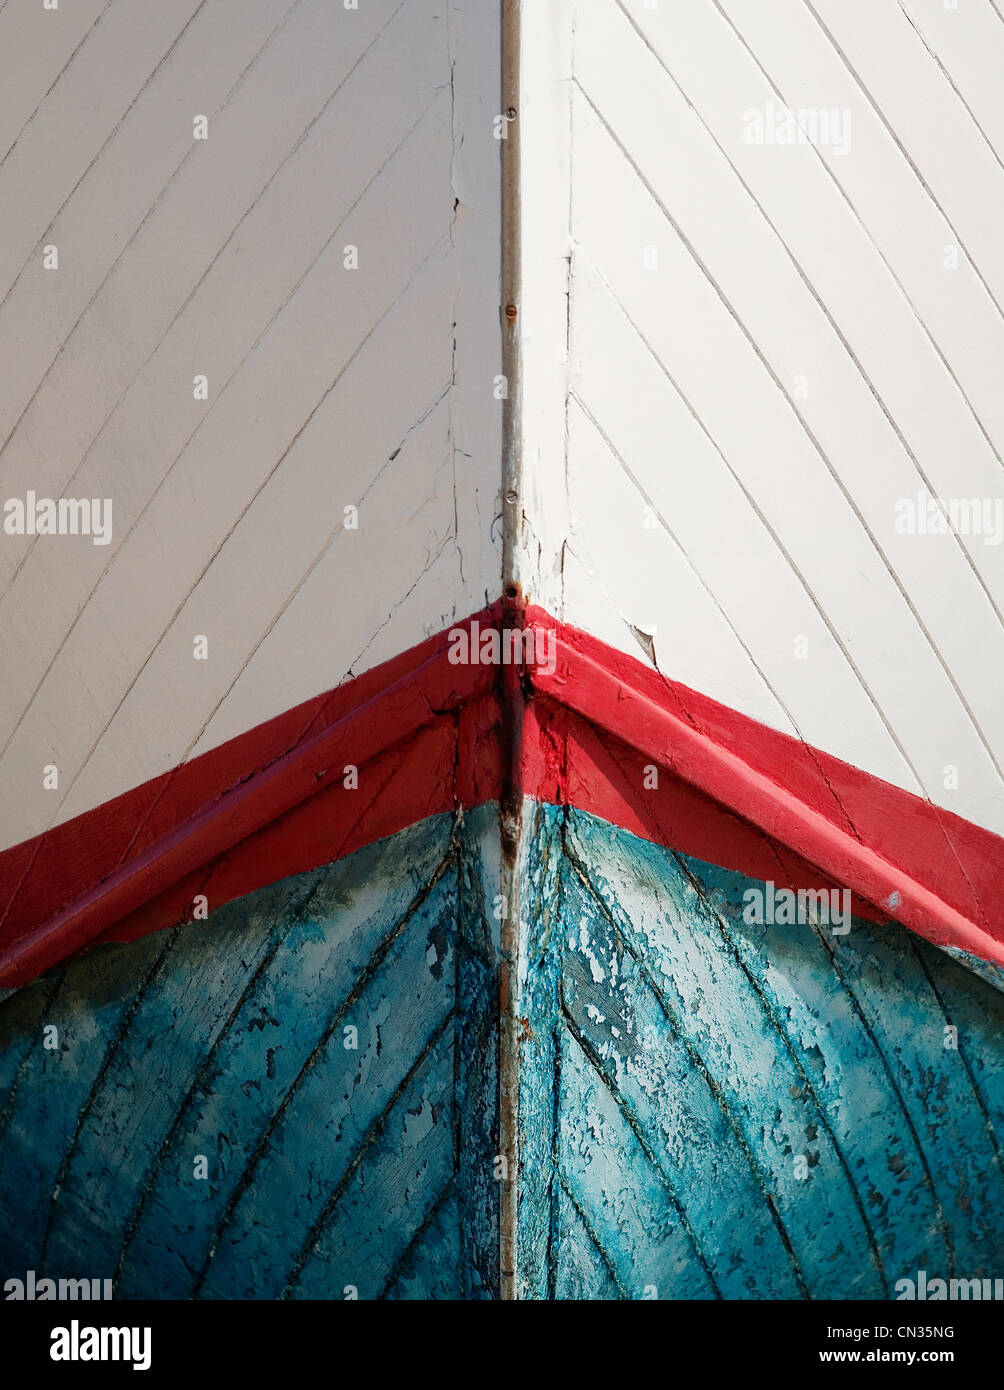 Boat abstract - Stock Image